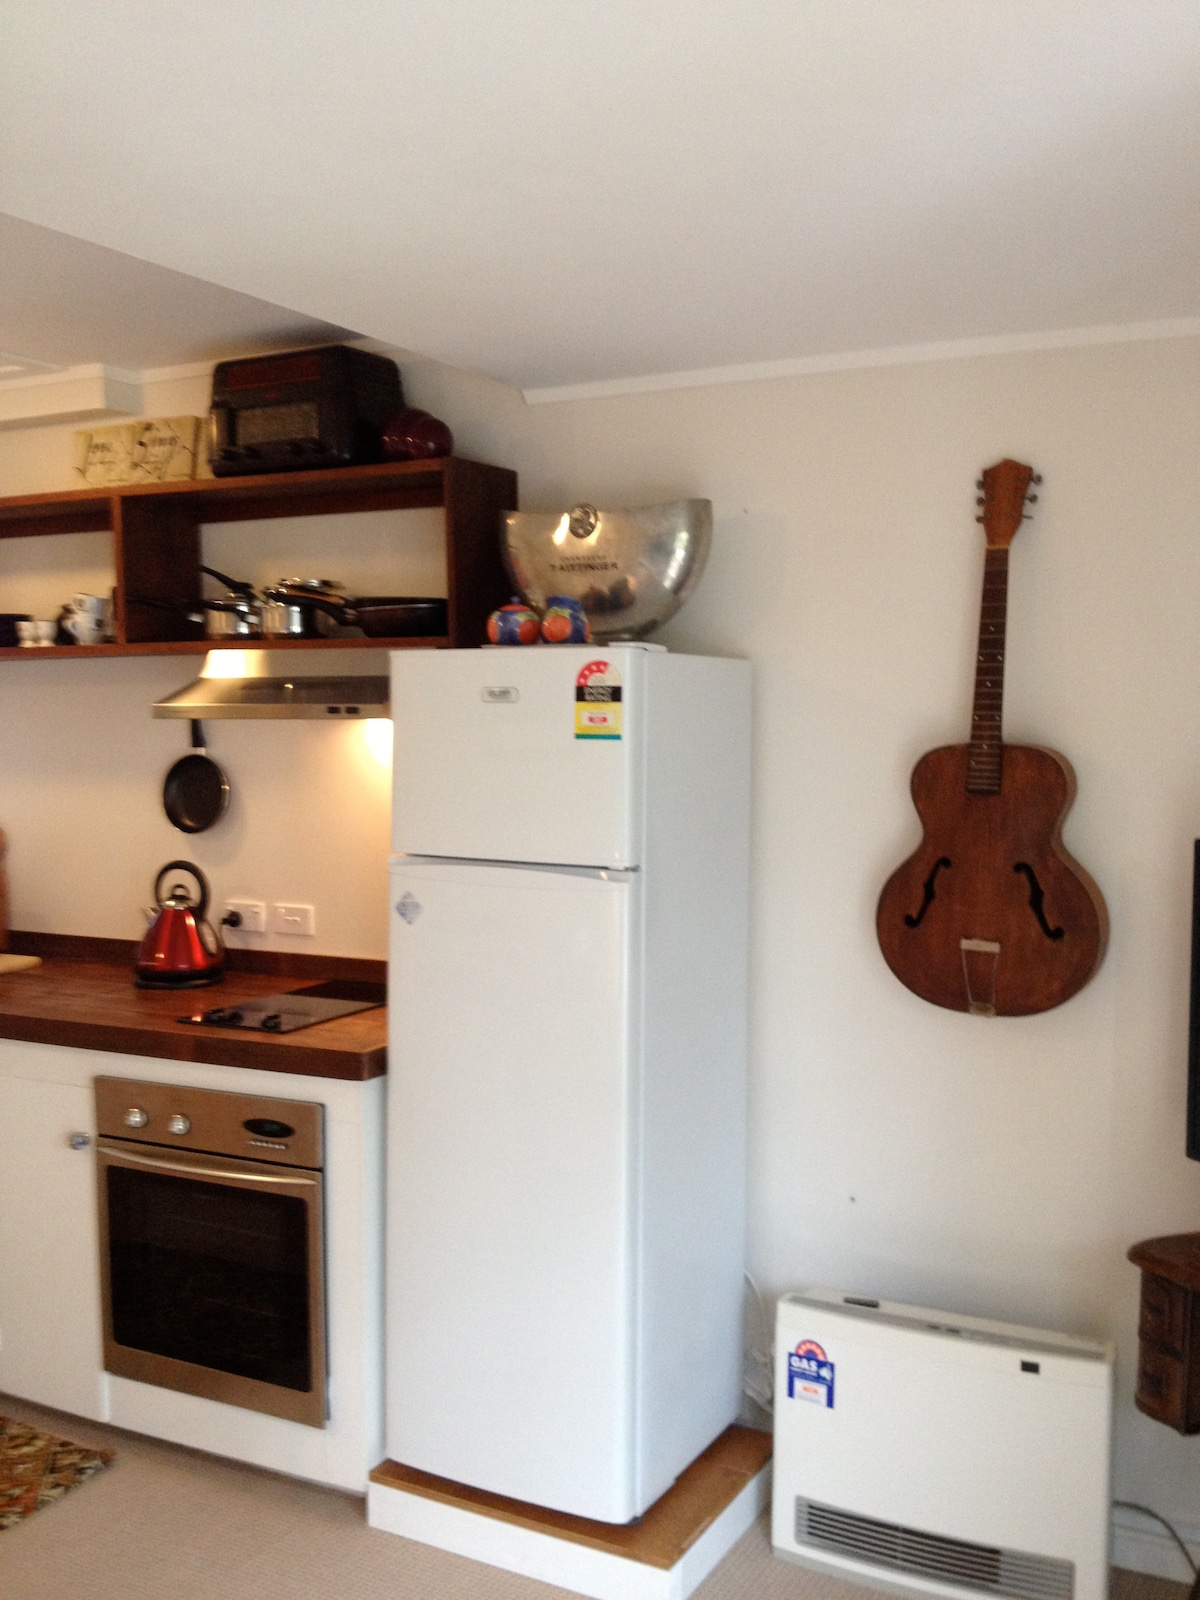 Kitchen showing Gas heating and Fridge.